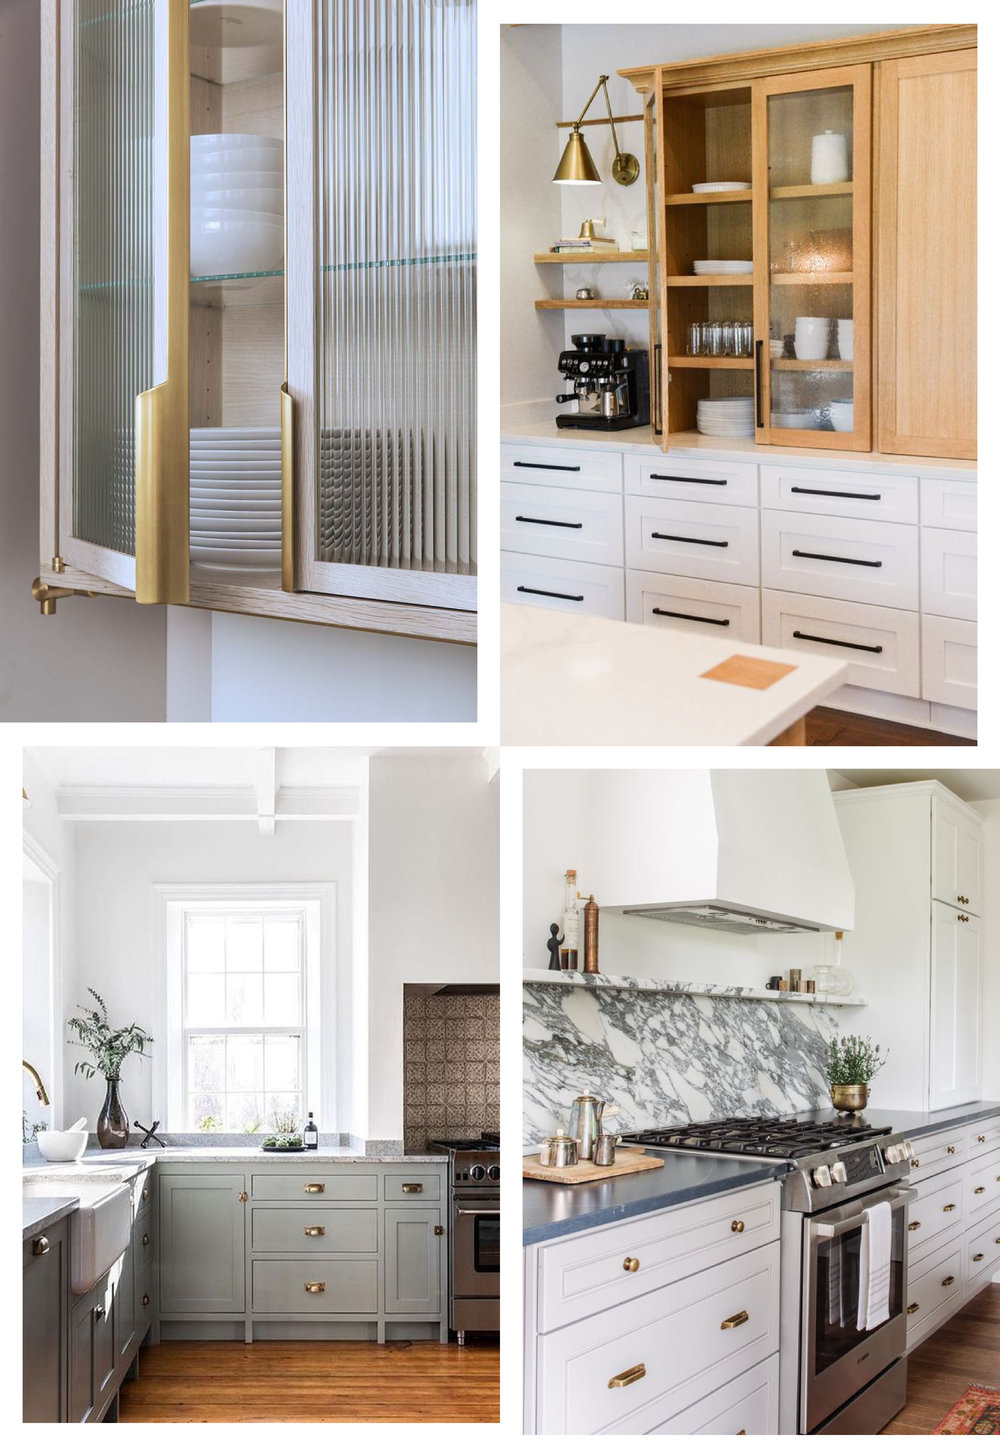 Clockwise from top left:  @hammerandspear  |  @westend.interiors  |  @alison_giese  |  @blockbrotherscc